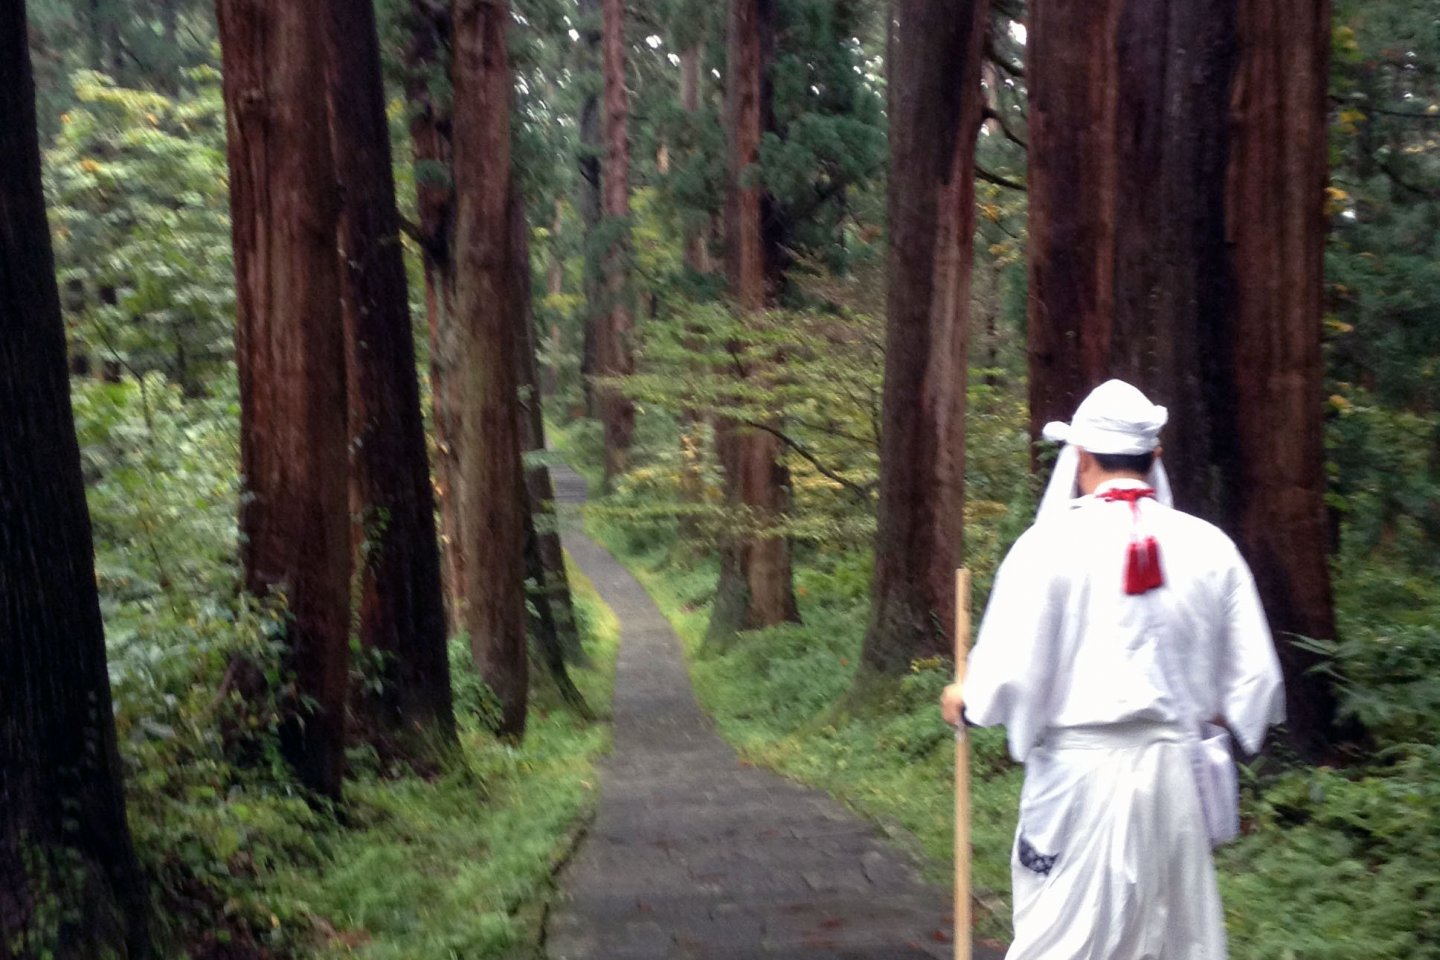 The mountain guide leads his yamabushi followers through the forest and up the mountain.